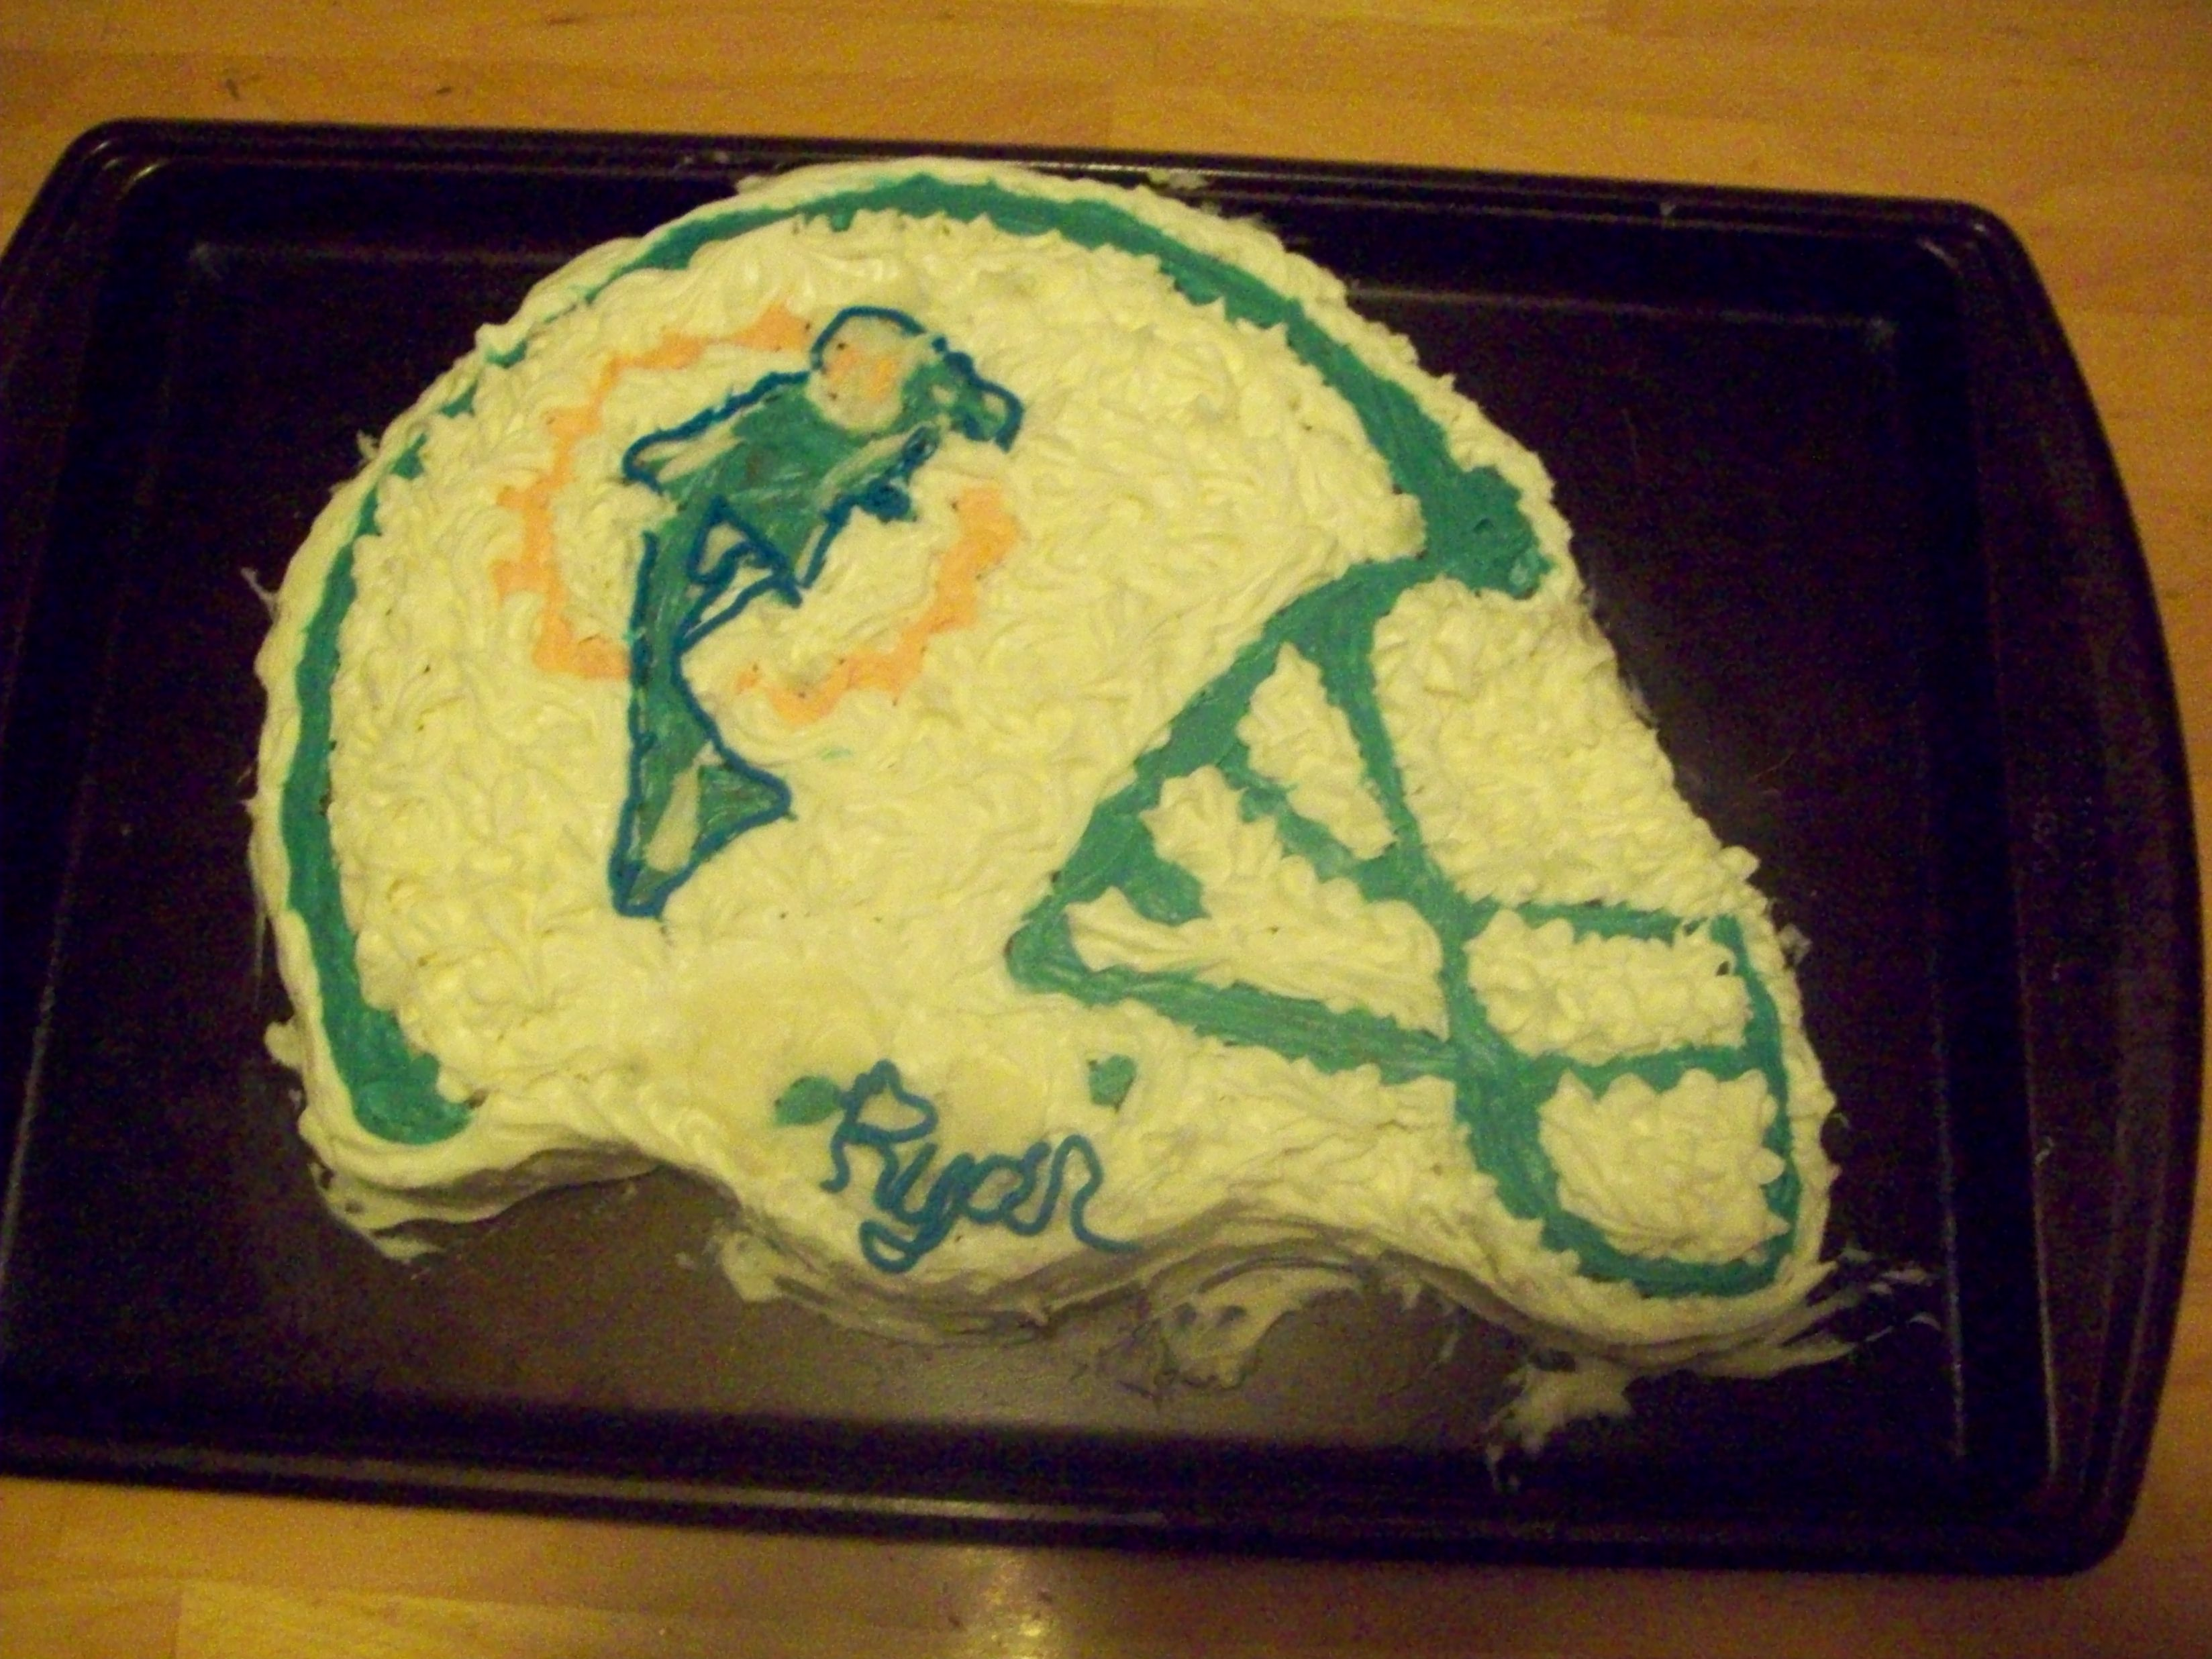 Miami Dolphins Fan Cake Delicious Desserts With Karen